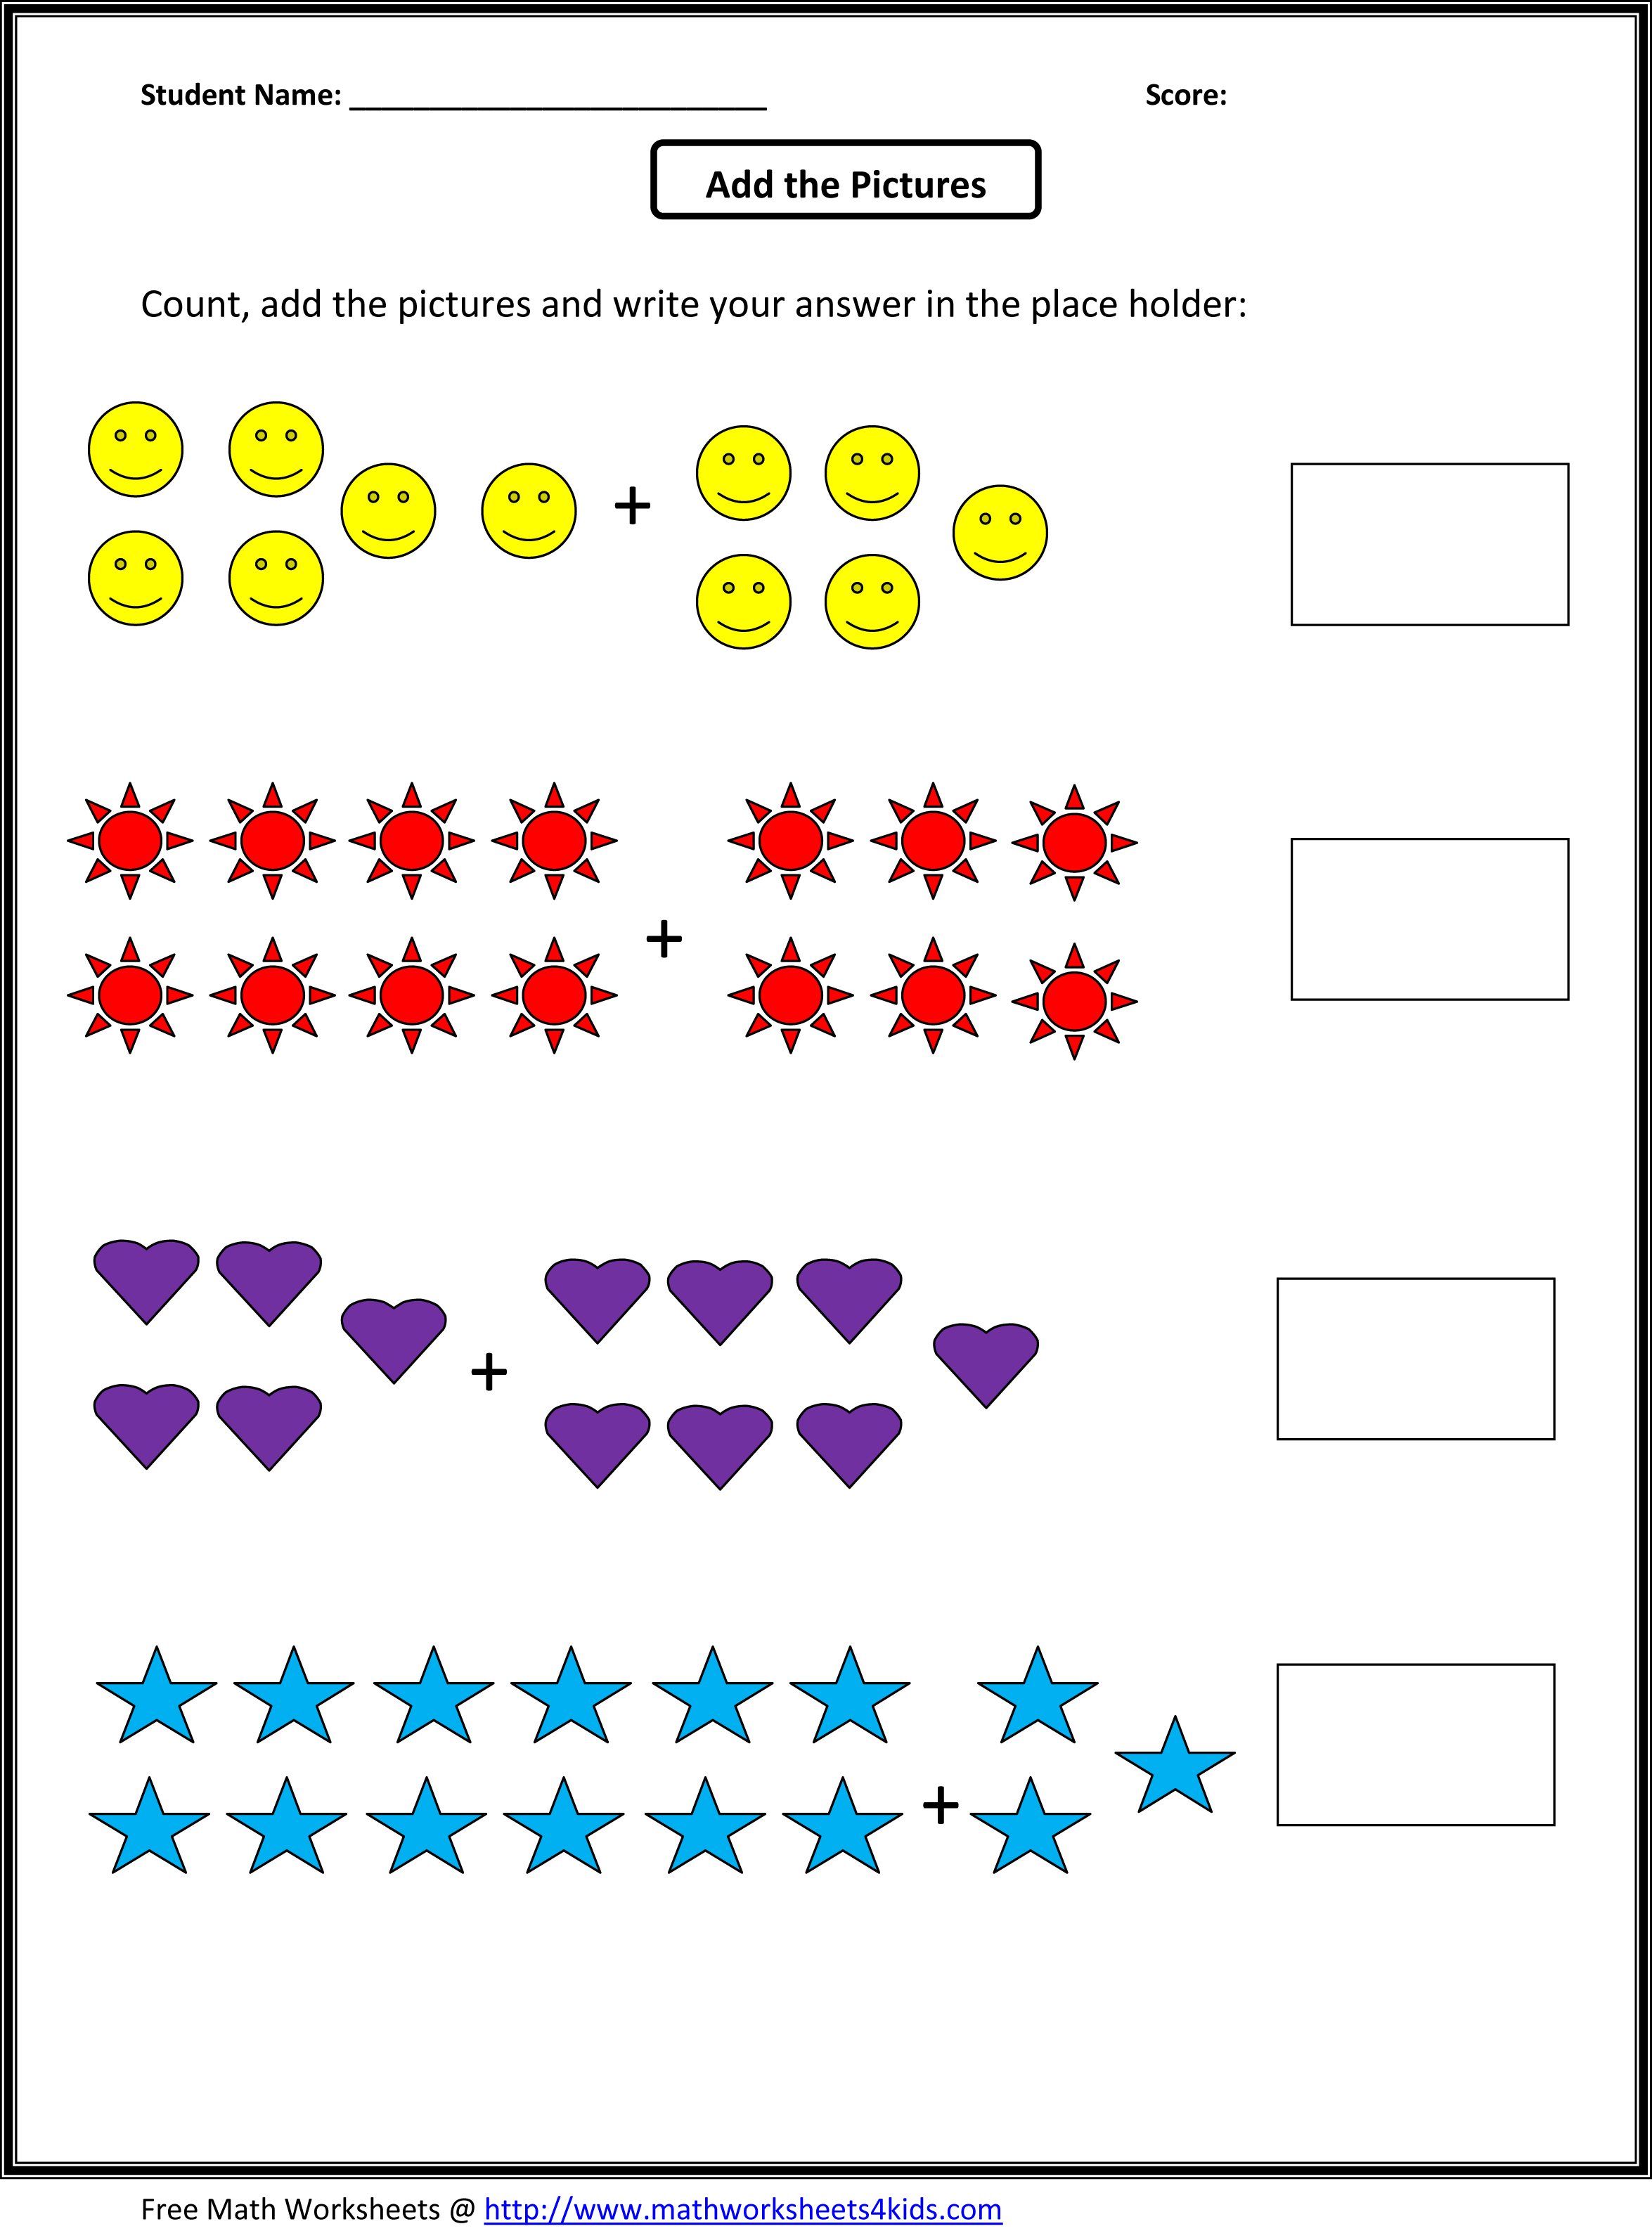 Weirdmailus  Inspiring Grade  Maths Worksheet  Reocurent With Engaging Math Worksheets For St Grade Free  Reocurent With Archaic Value Scale Worksheet Also Regrouping Addition Worksheets In Addition Bohr Model Practice Worksheet And Trigonometric Equations Worksheet As Well As Fractions Word Problems Worksheets Additionally Algebraic Properties Worksheet From Reocurentcom With Weirdmailus  Engaging Grade  Maths Worksheet  Reocurent With Archaic Math Worksheets For St Grade Free  Reocurent And Inspiring Value Scale Worksheet Also Regrouping Addition Worksheets In Addition Bohr Model Practice Worksheet From Reocurentcom